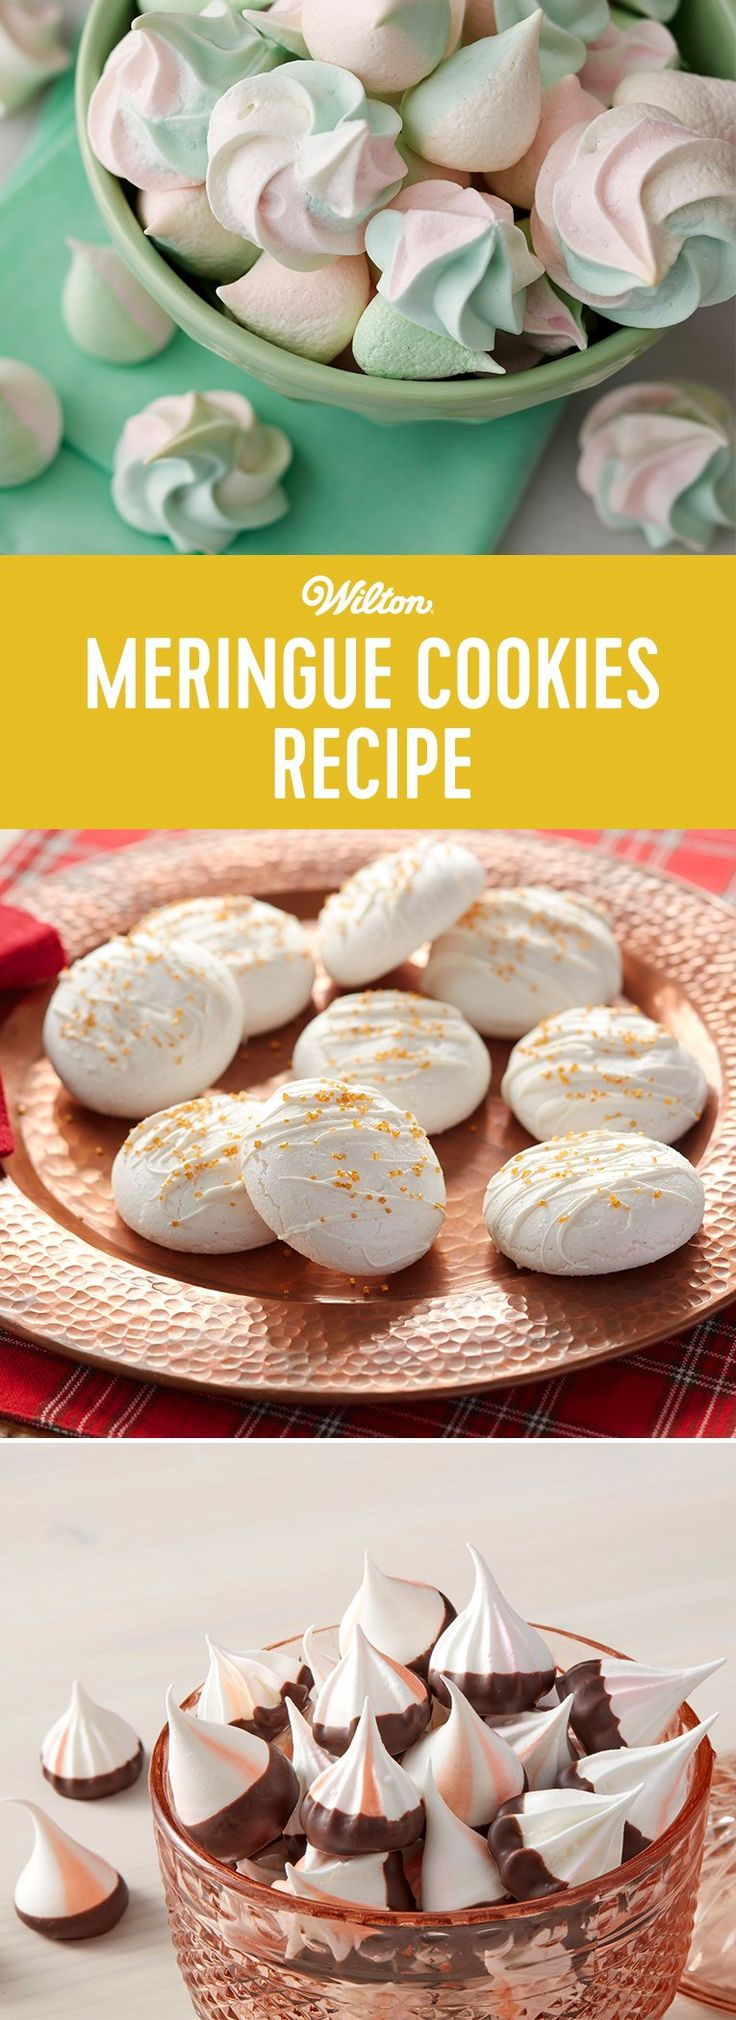 Meringue Cookies Recipe - This basic and easy meringue cookie recipe can be dressed up however you like. Add these airy little cookies to the tops of pies and cakes, or dress them up with different colors and sprinkles.